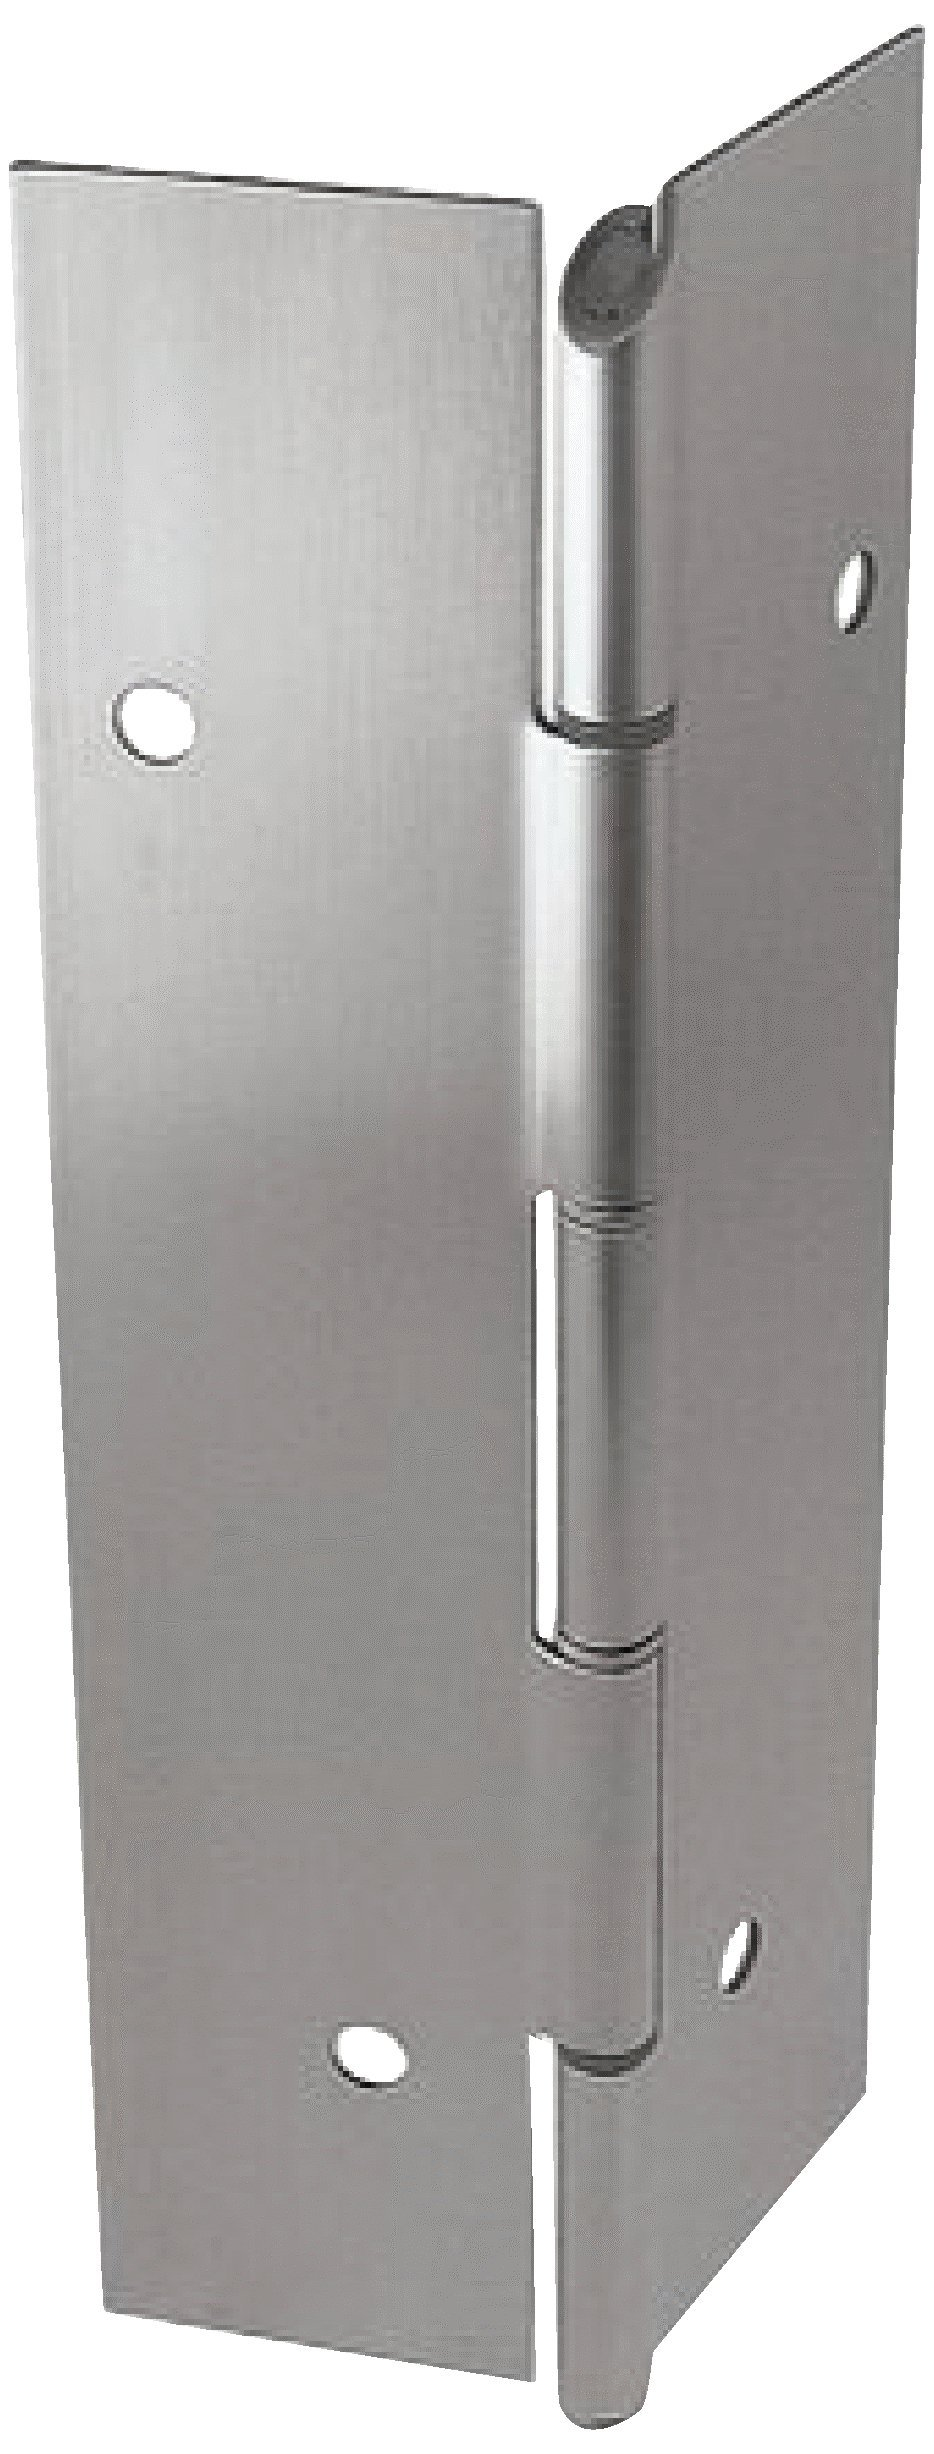 Markar 085547 FM300-95 Stainless Steel Pin and Barrel Continuous Hinge, 95''